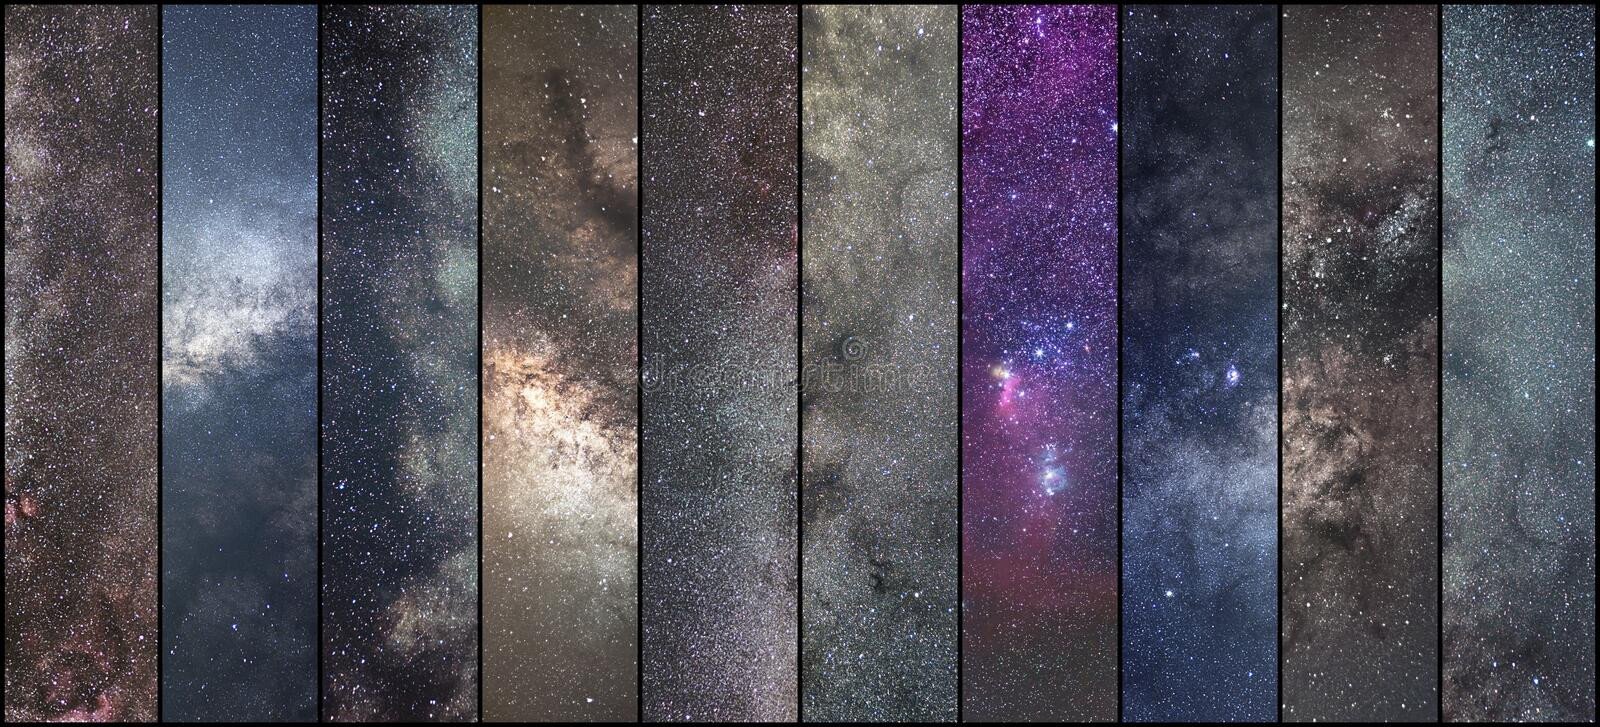 Collage dello spazio Collage di astronomia Collage di astrofotografia Universo immagine stock